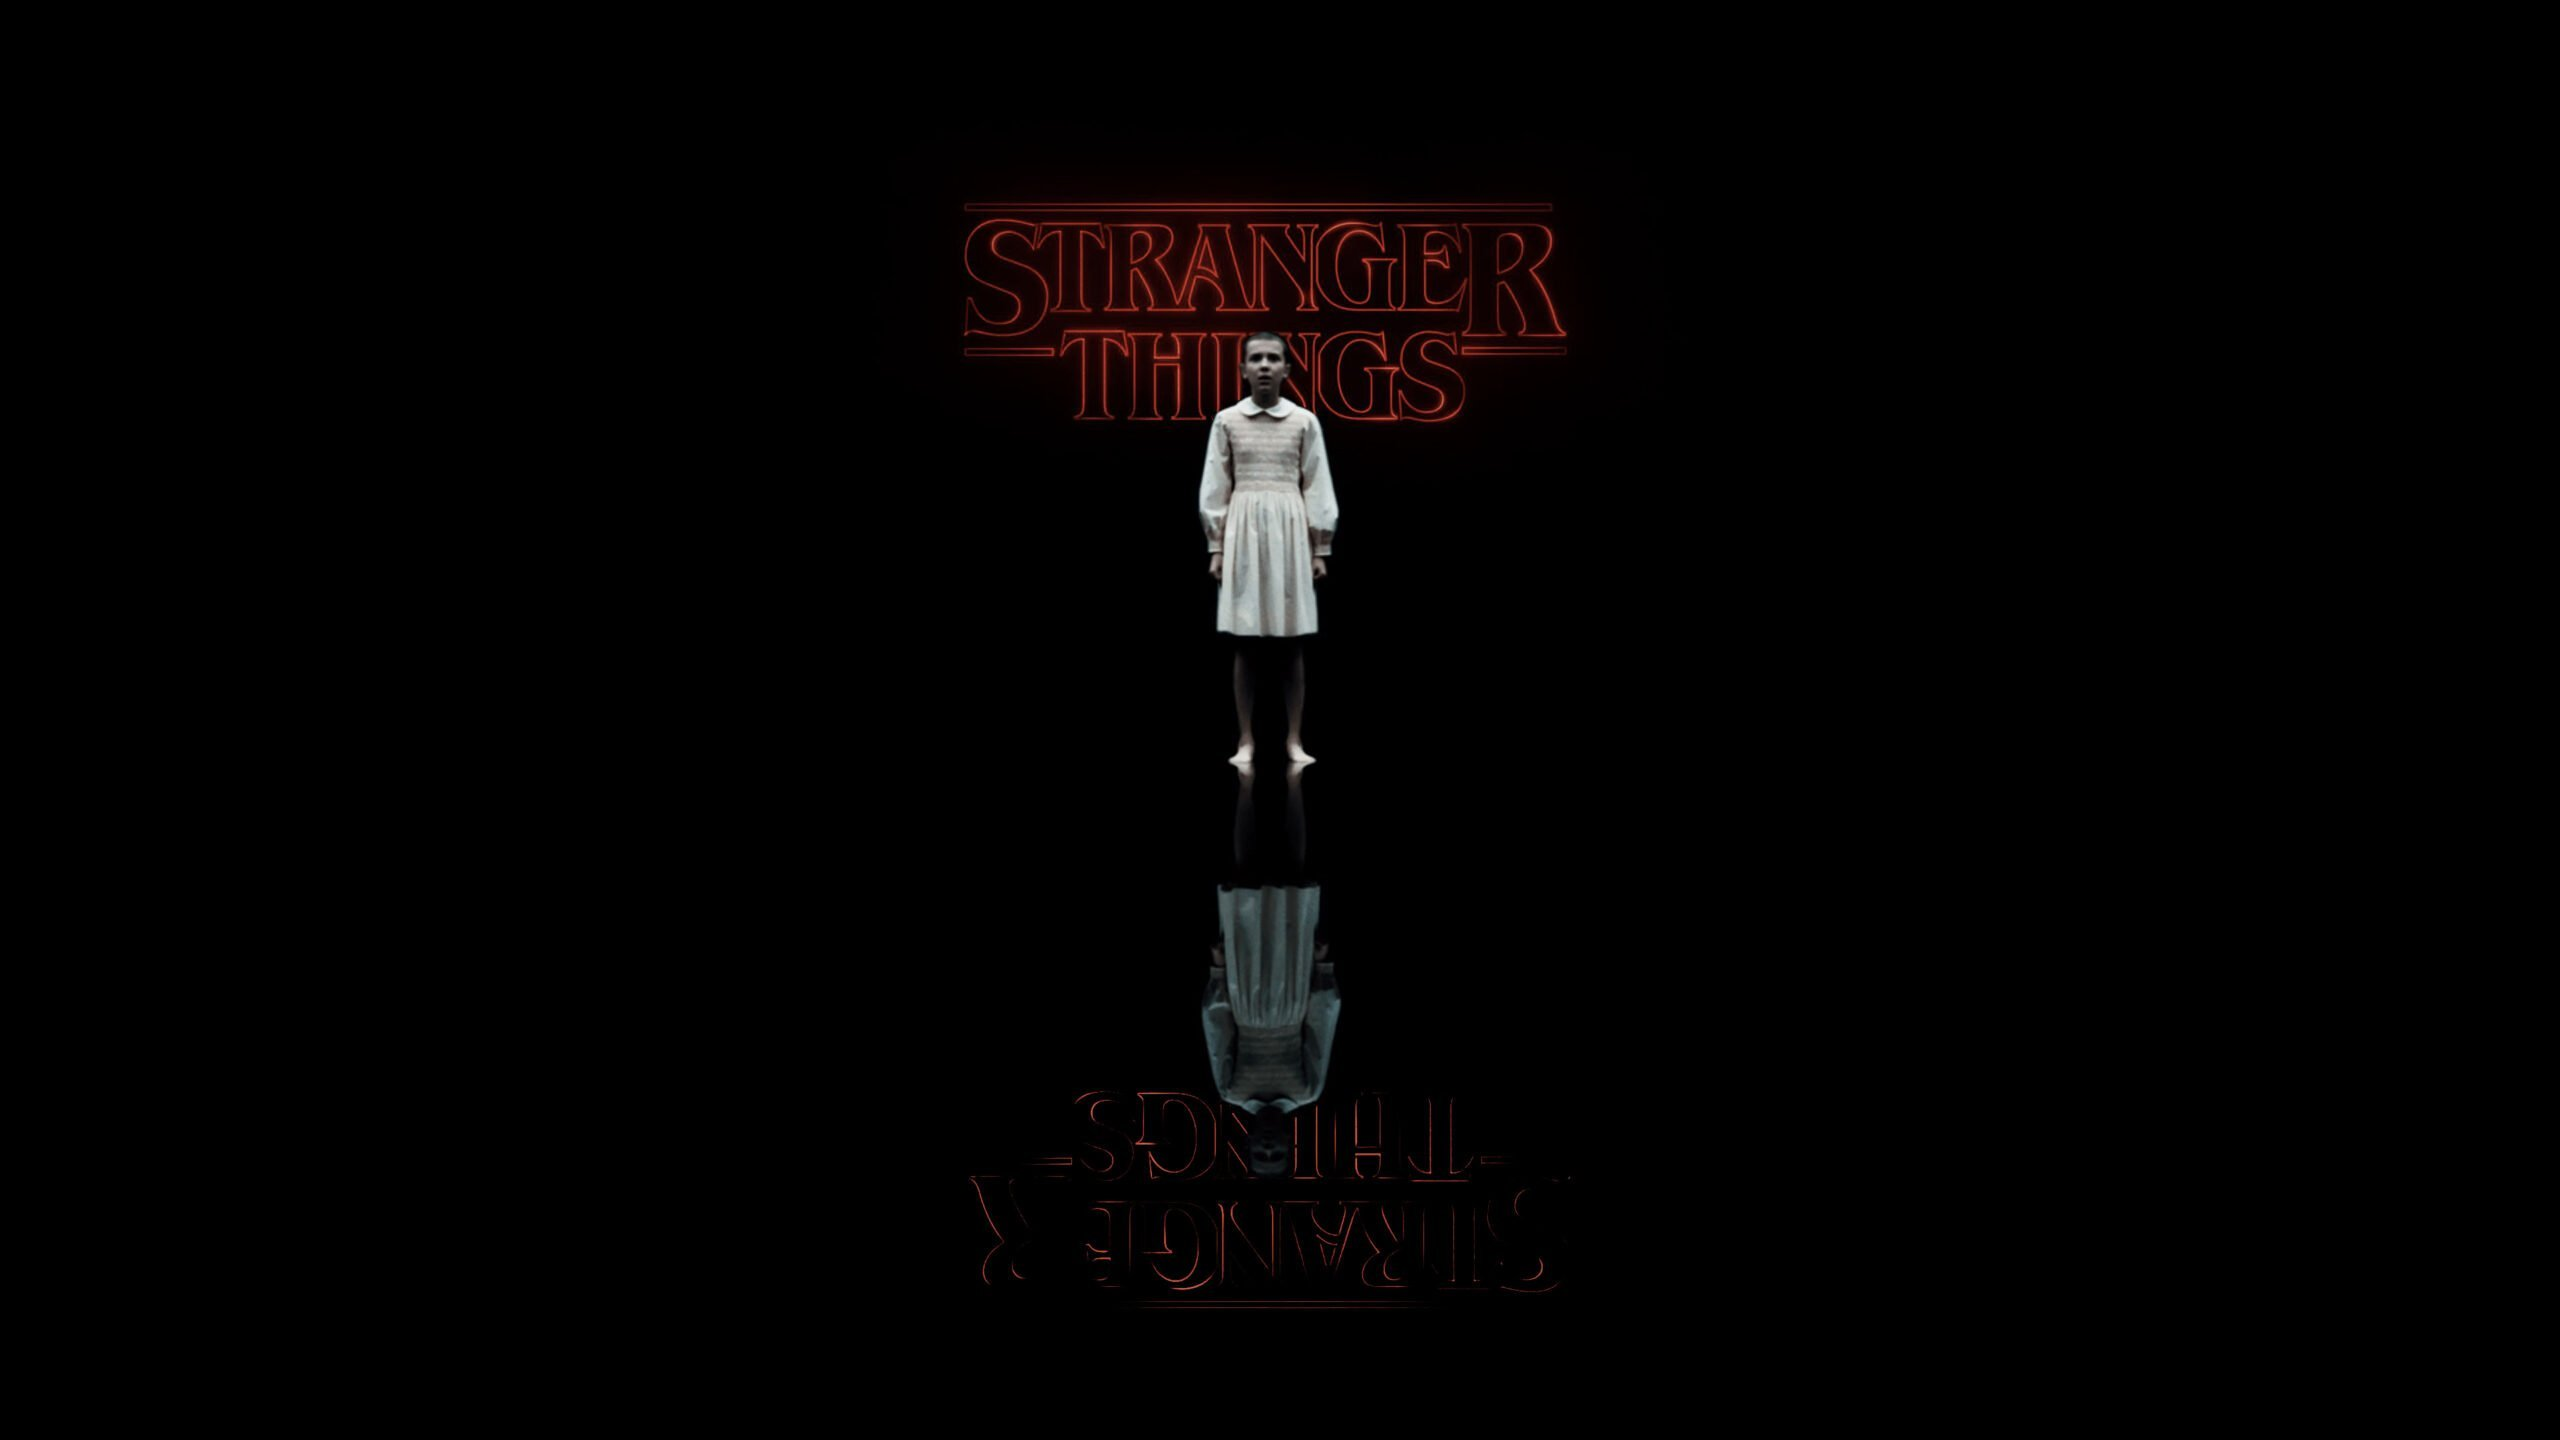 stranger things iphone wallpaper